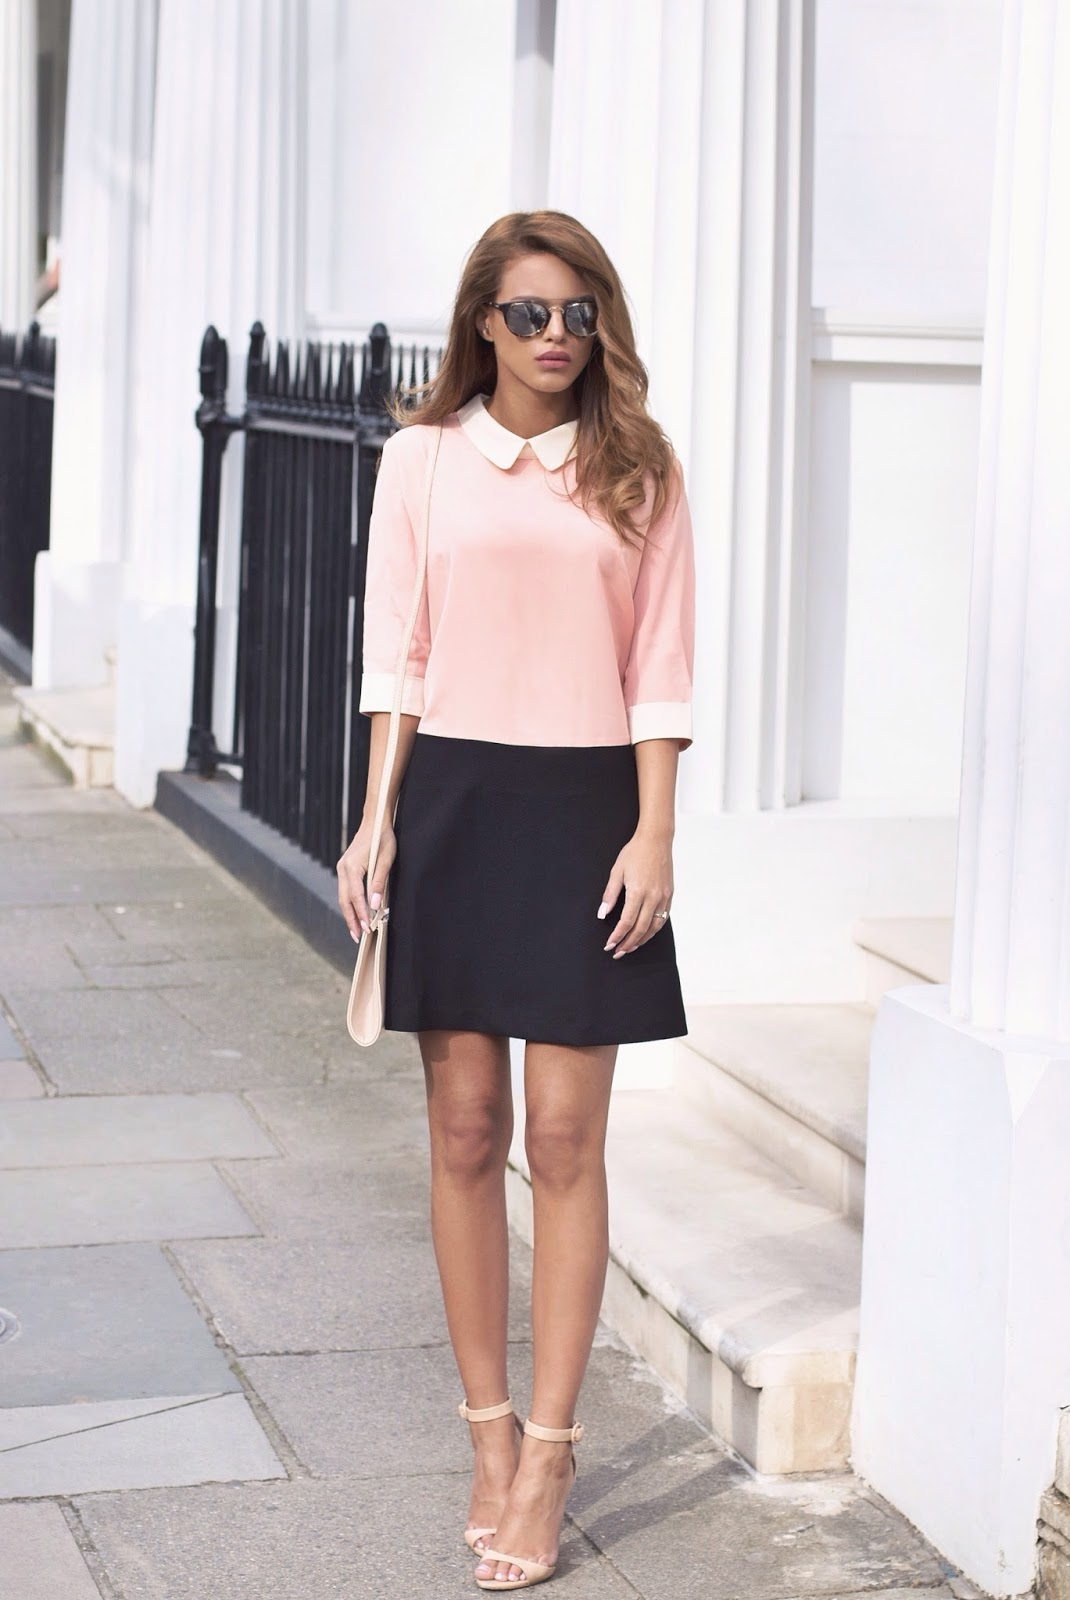 0a90cbce609e Nada Adelle is showing off the blush pink fashion trend with a Lia blush  pink and